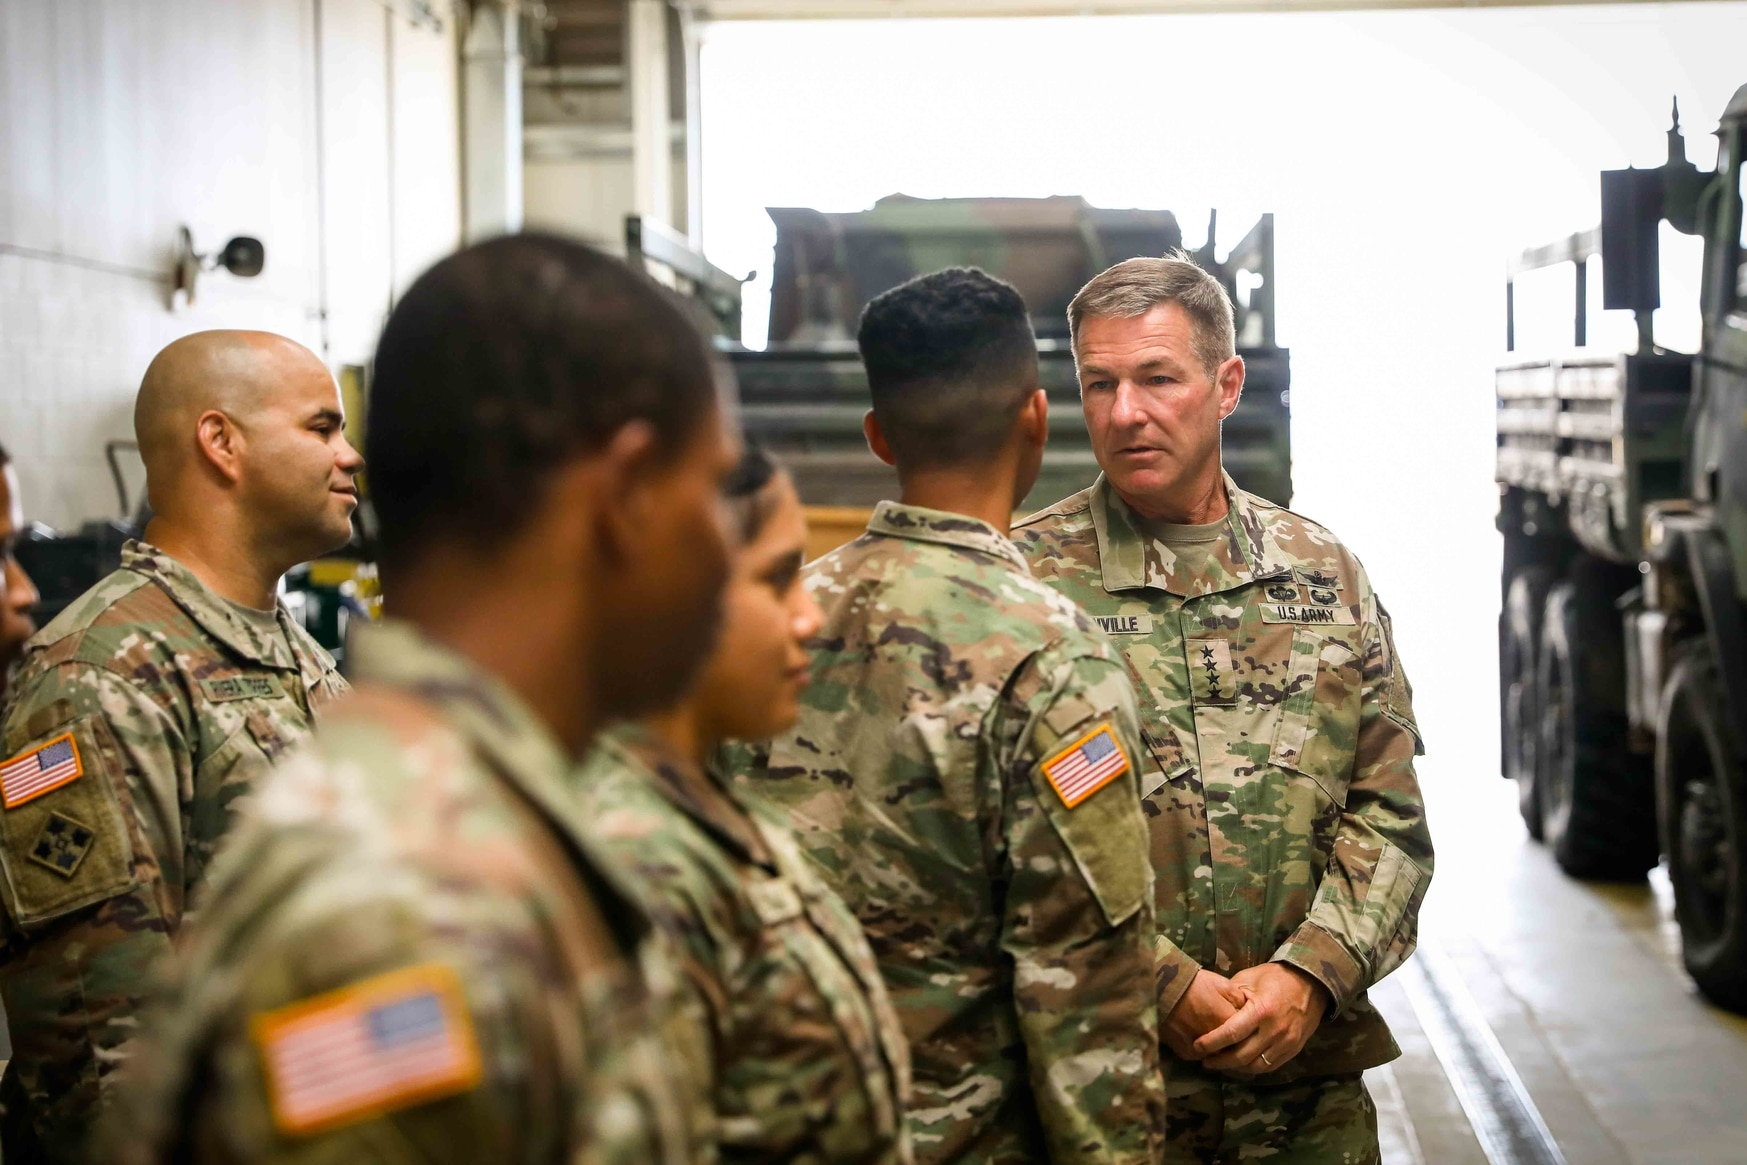 Gen. James C. McConville, right, visits soldiers at Fort Bliss, Texas, in July. (Spc. Matthew J. Marcellus/Army)